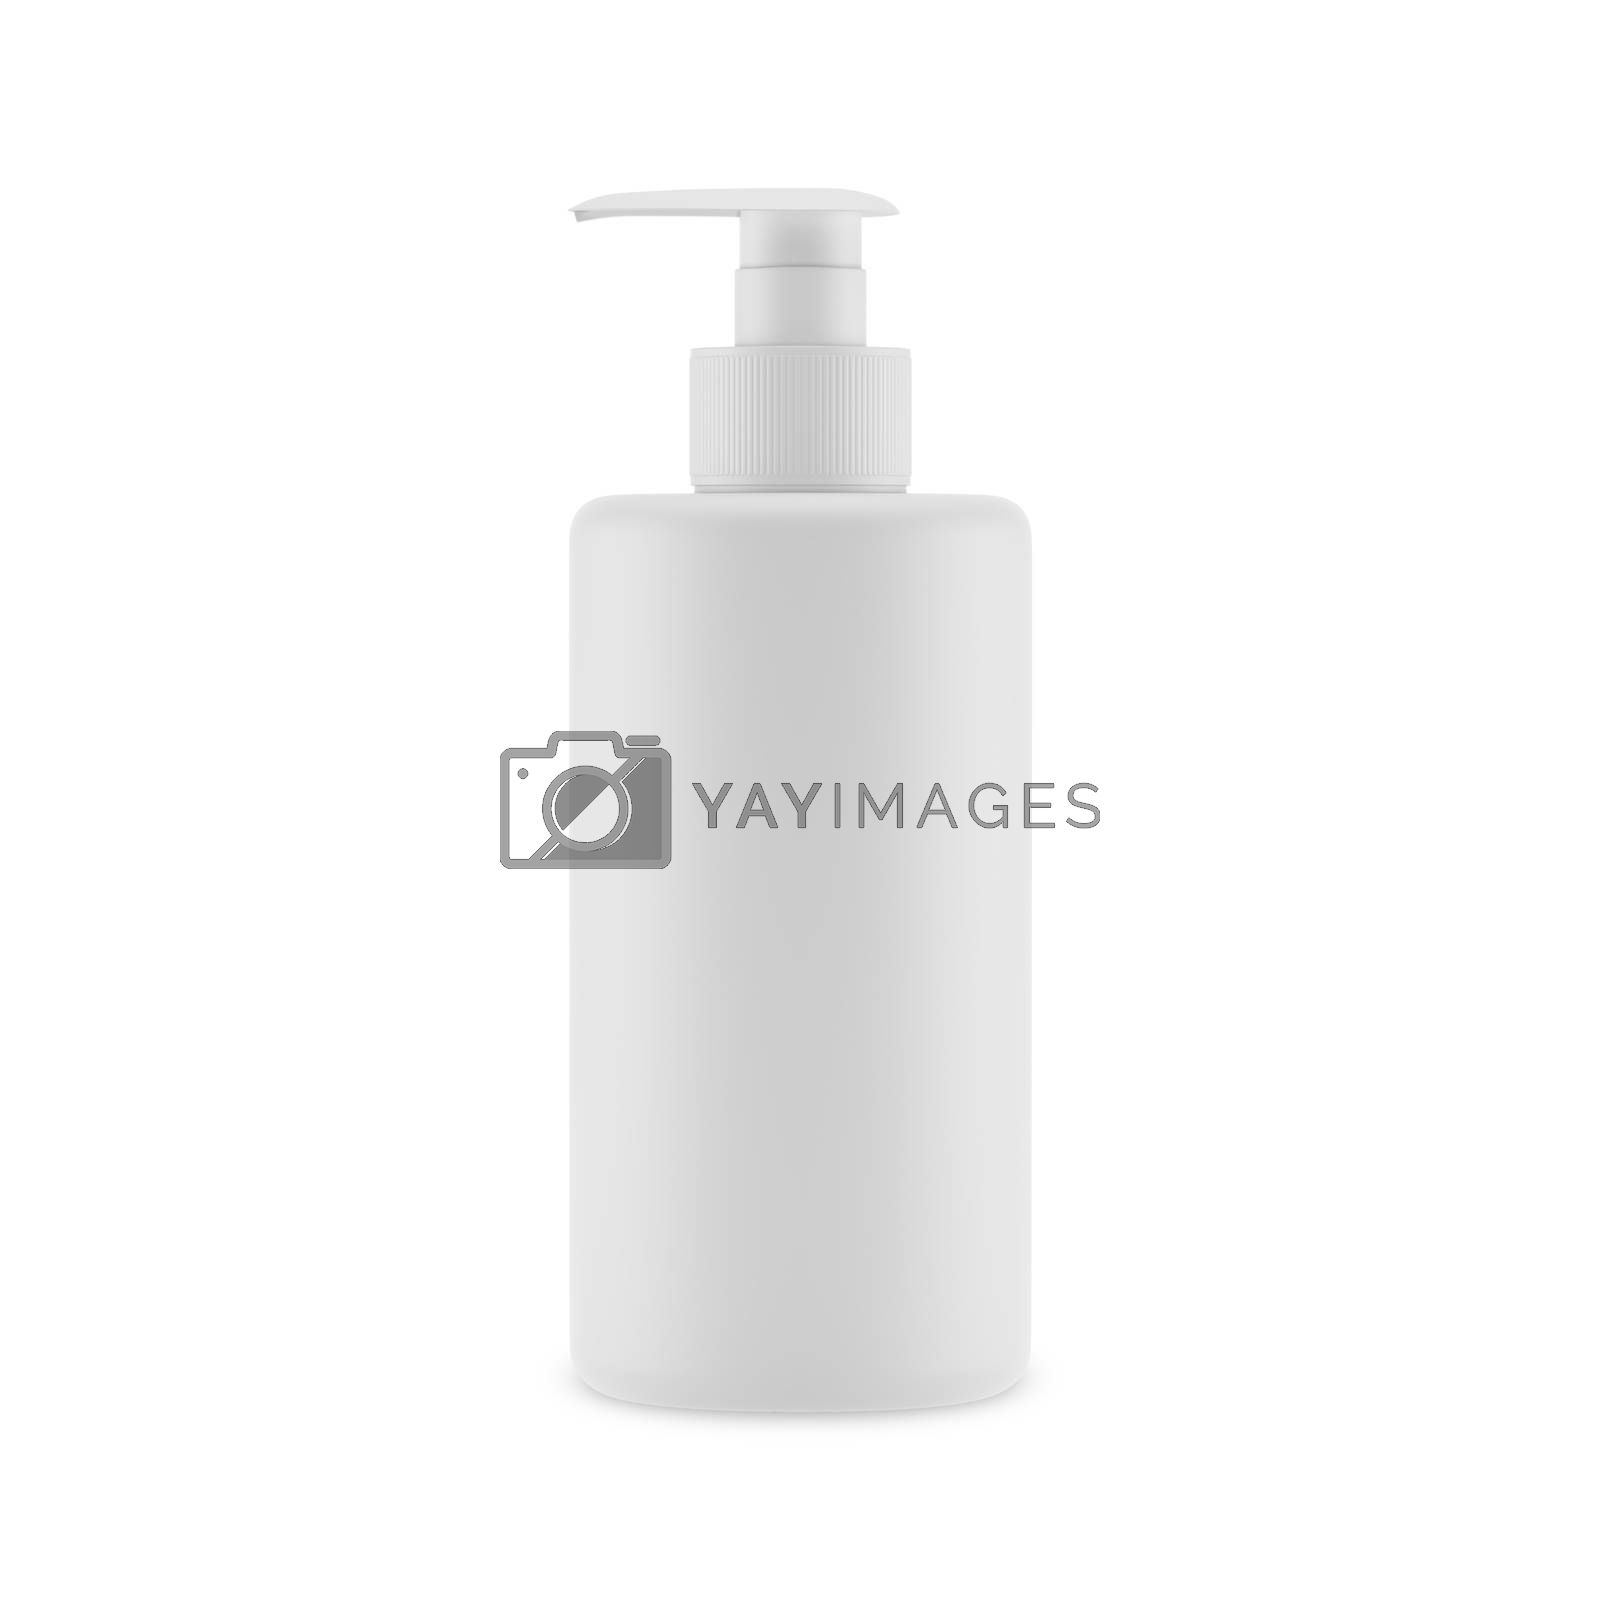 Plastic opaque cream bottle isolated on white background, 3D illustration. by kup1984